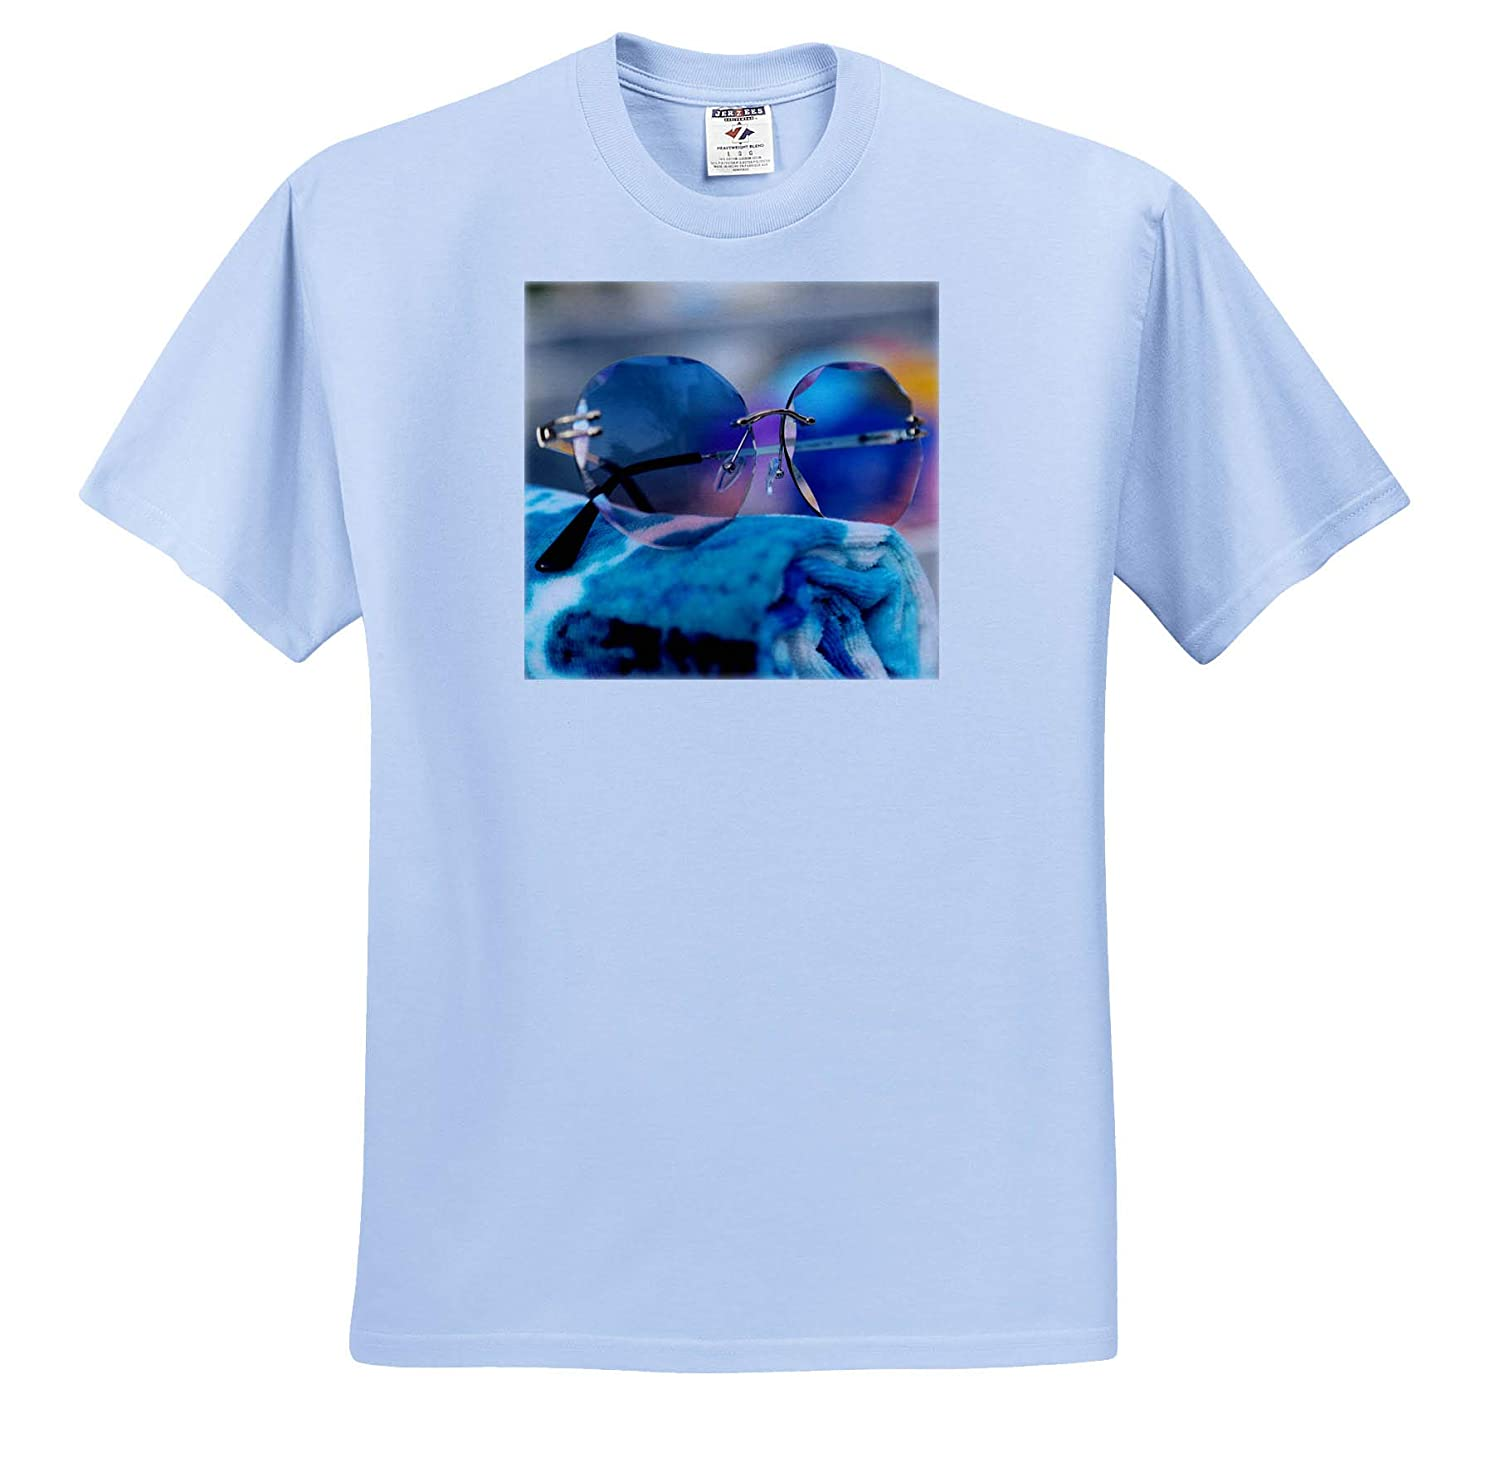 Photograph of a Fun Pair of Sunglasses on a Rolled up Towel Seasonal ts/_315594 - Adult T-Shirt XL 3dRose Stamp City